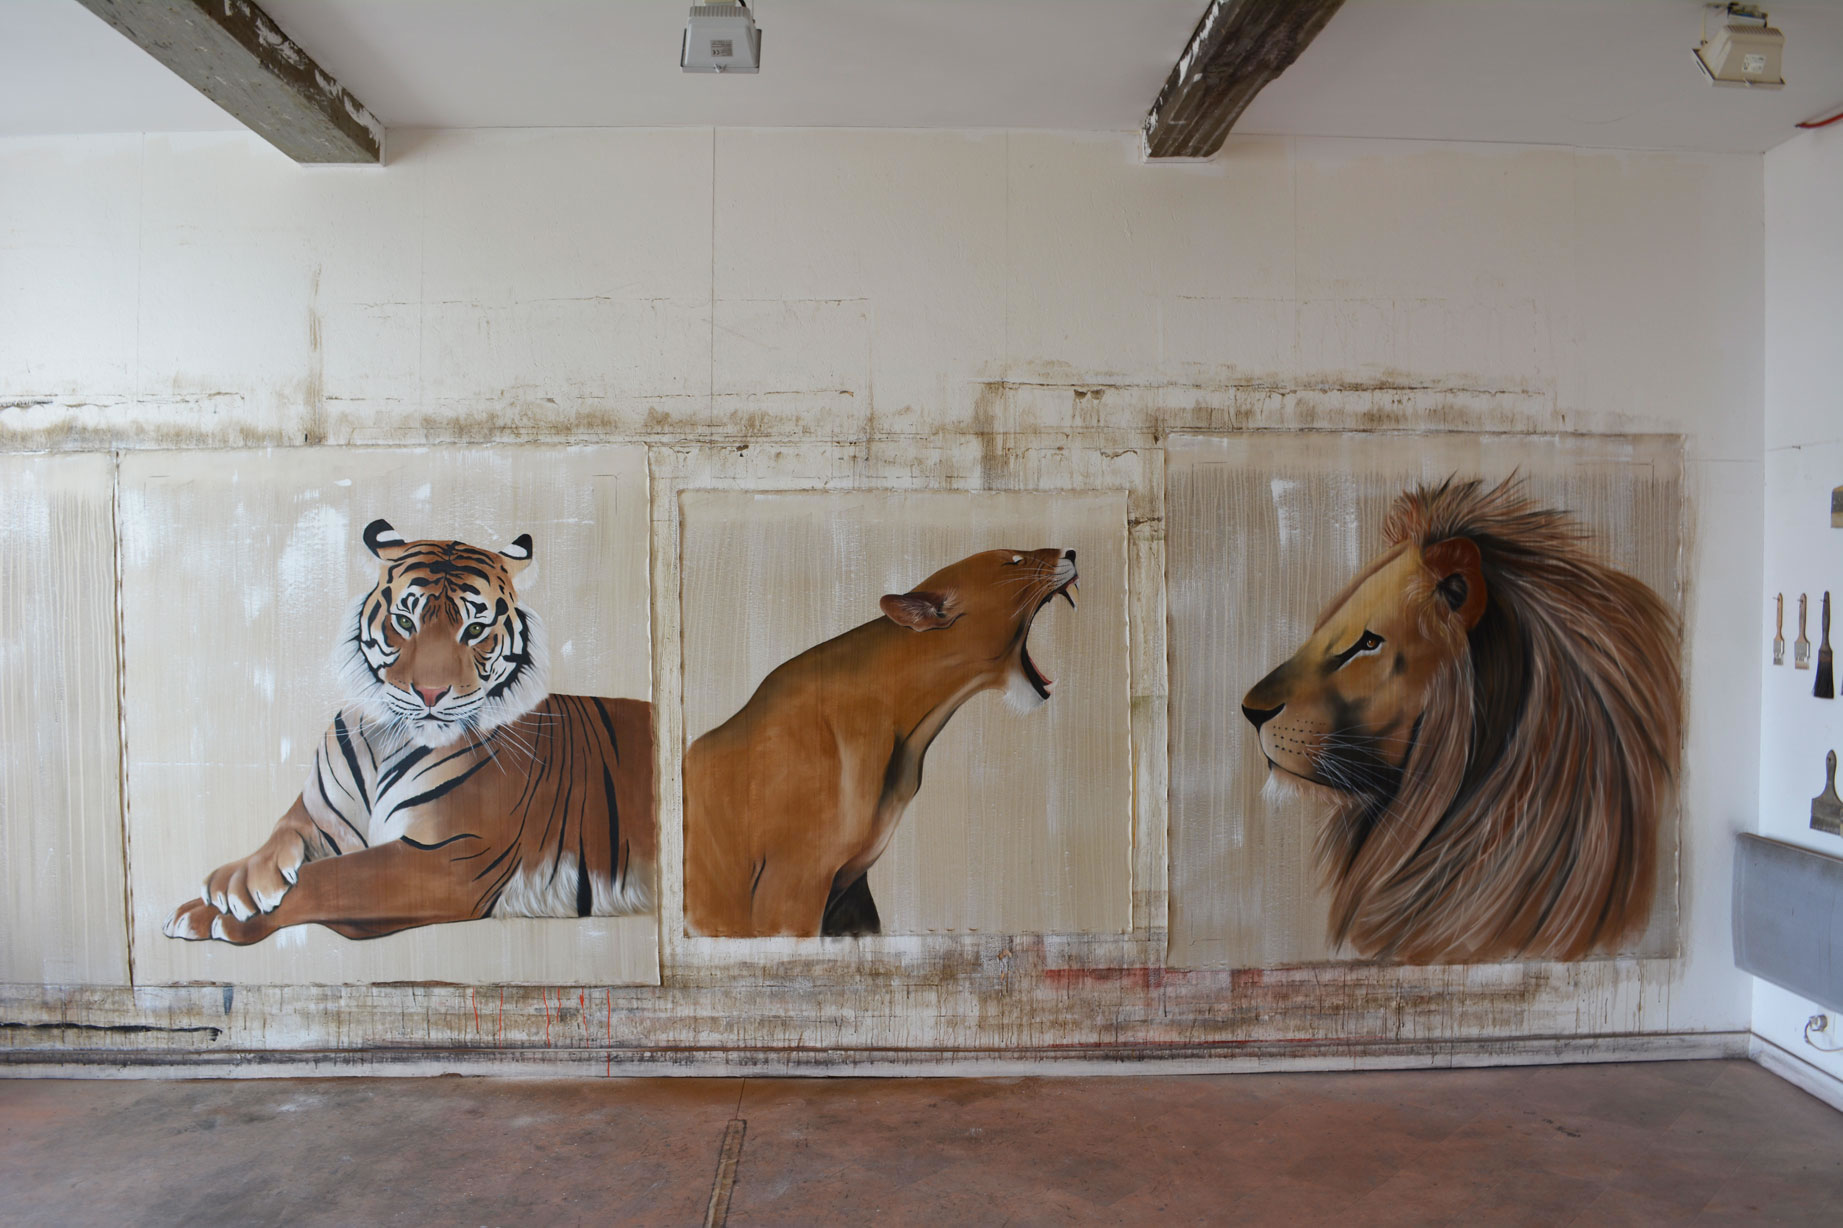 Fauves lioness-Tiger-Royal-Bengal-LION Thierry Bisch painter animals painting art decoration hotel design interior luxury nature biodiversity conservation